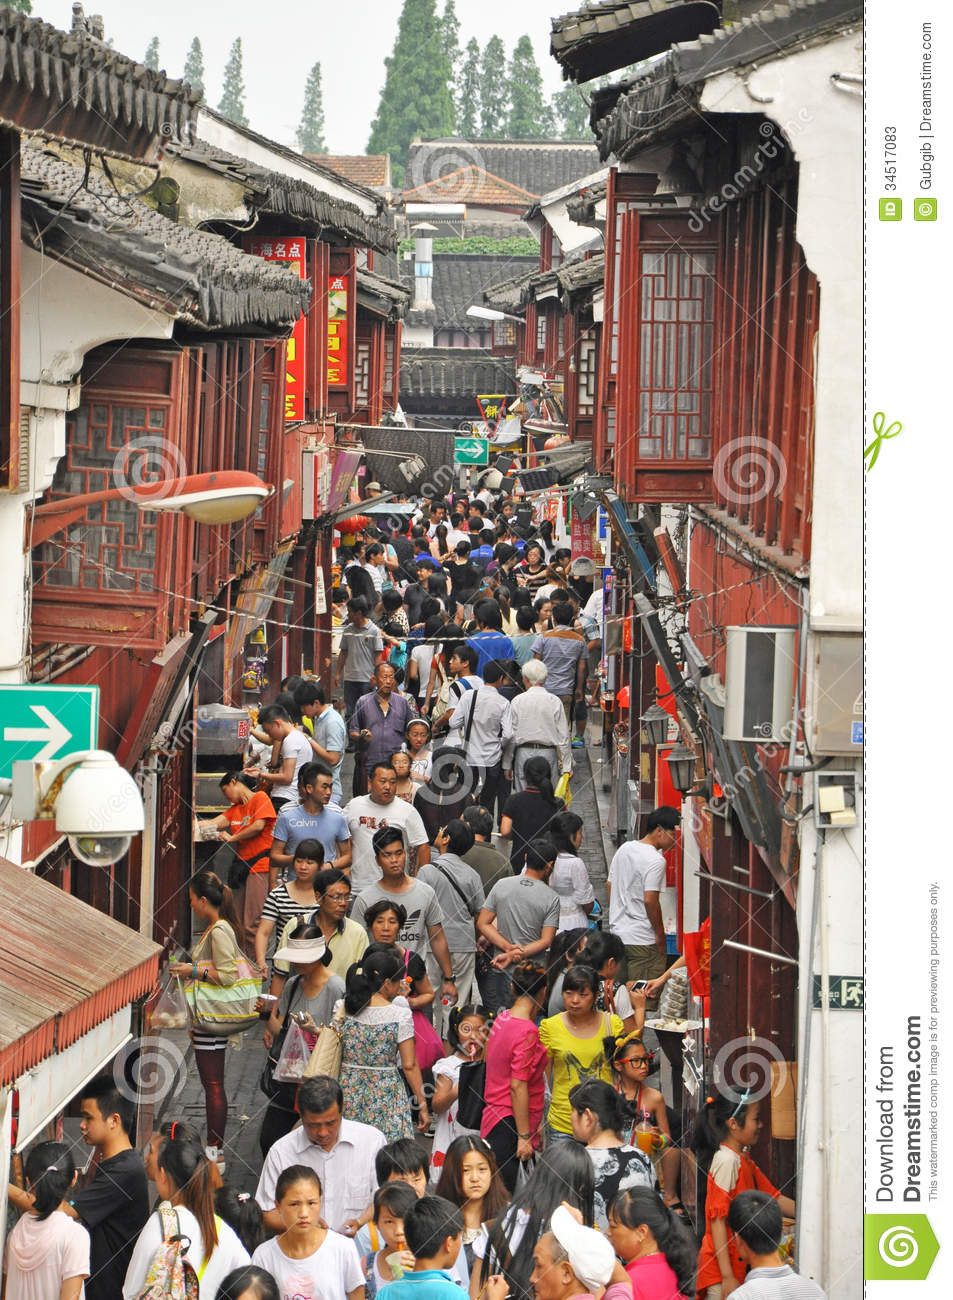 QiBao old town editorial stock photo Image of chinese  34517083